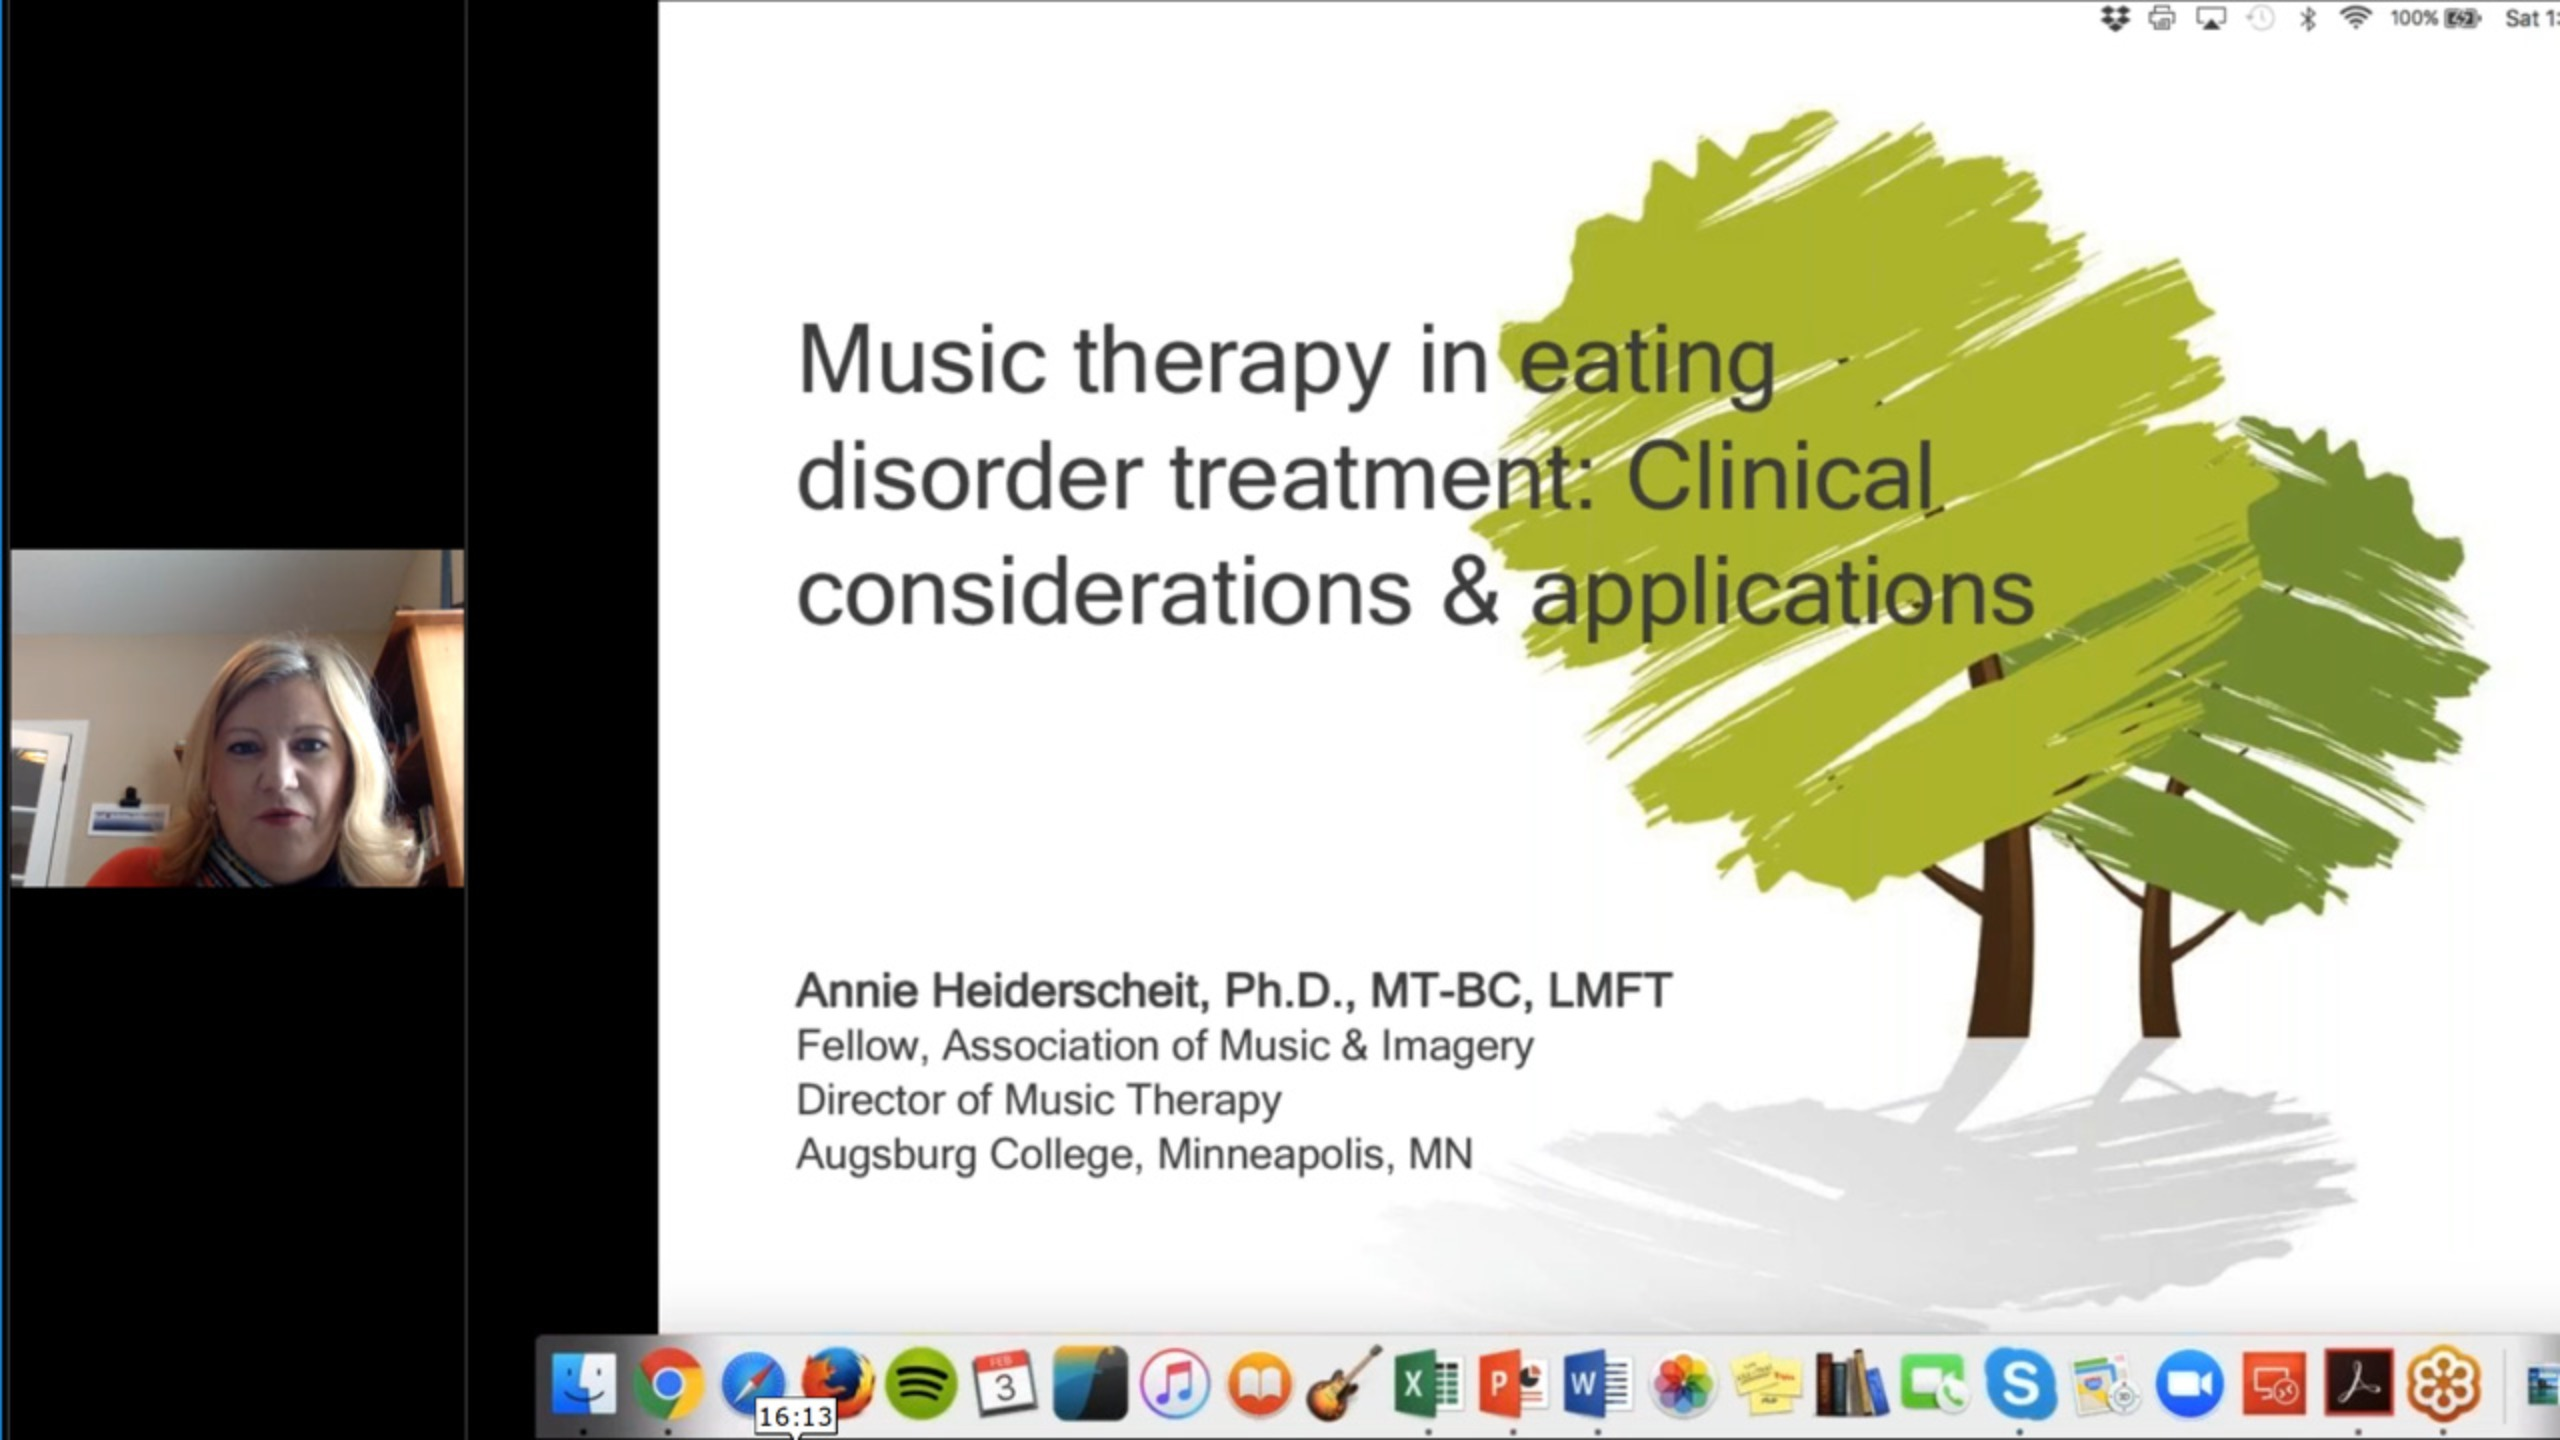 Music therapy in eating disorder treatment: Clinical considerations and and applications